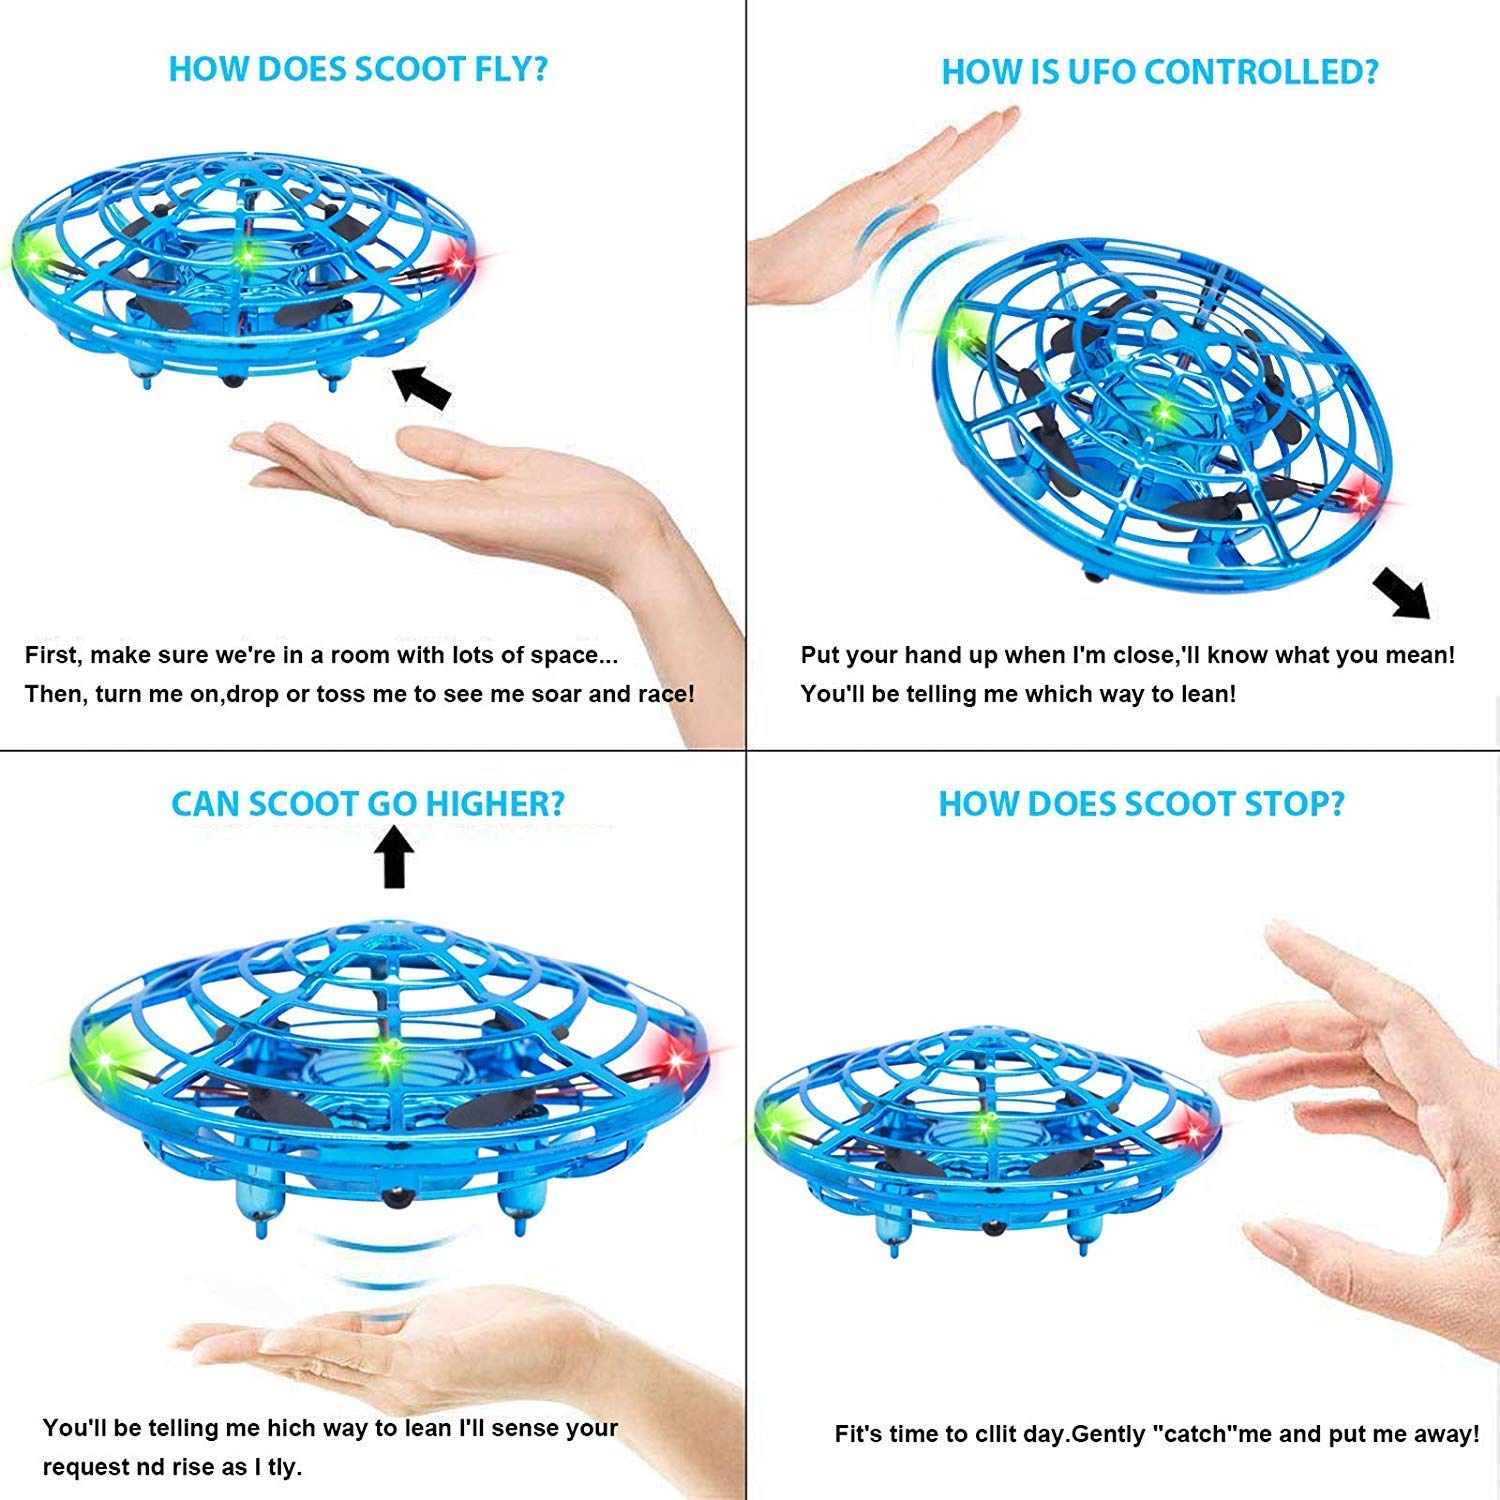 HYSBeauty UFO Flying Ball Toys, Gravity Defying Hand-Controlled, UFO Drones Toys, Infrared Induction Interactive Drone Indoor Flyer Toys with 360°Rotating & LED Lights for Kids, Boys & Adults(Blue) by HYSBeauty (Image #5)